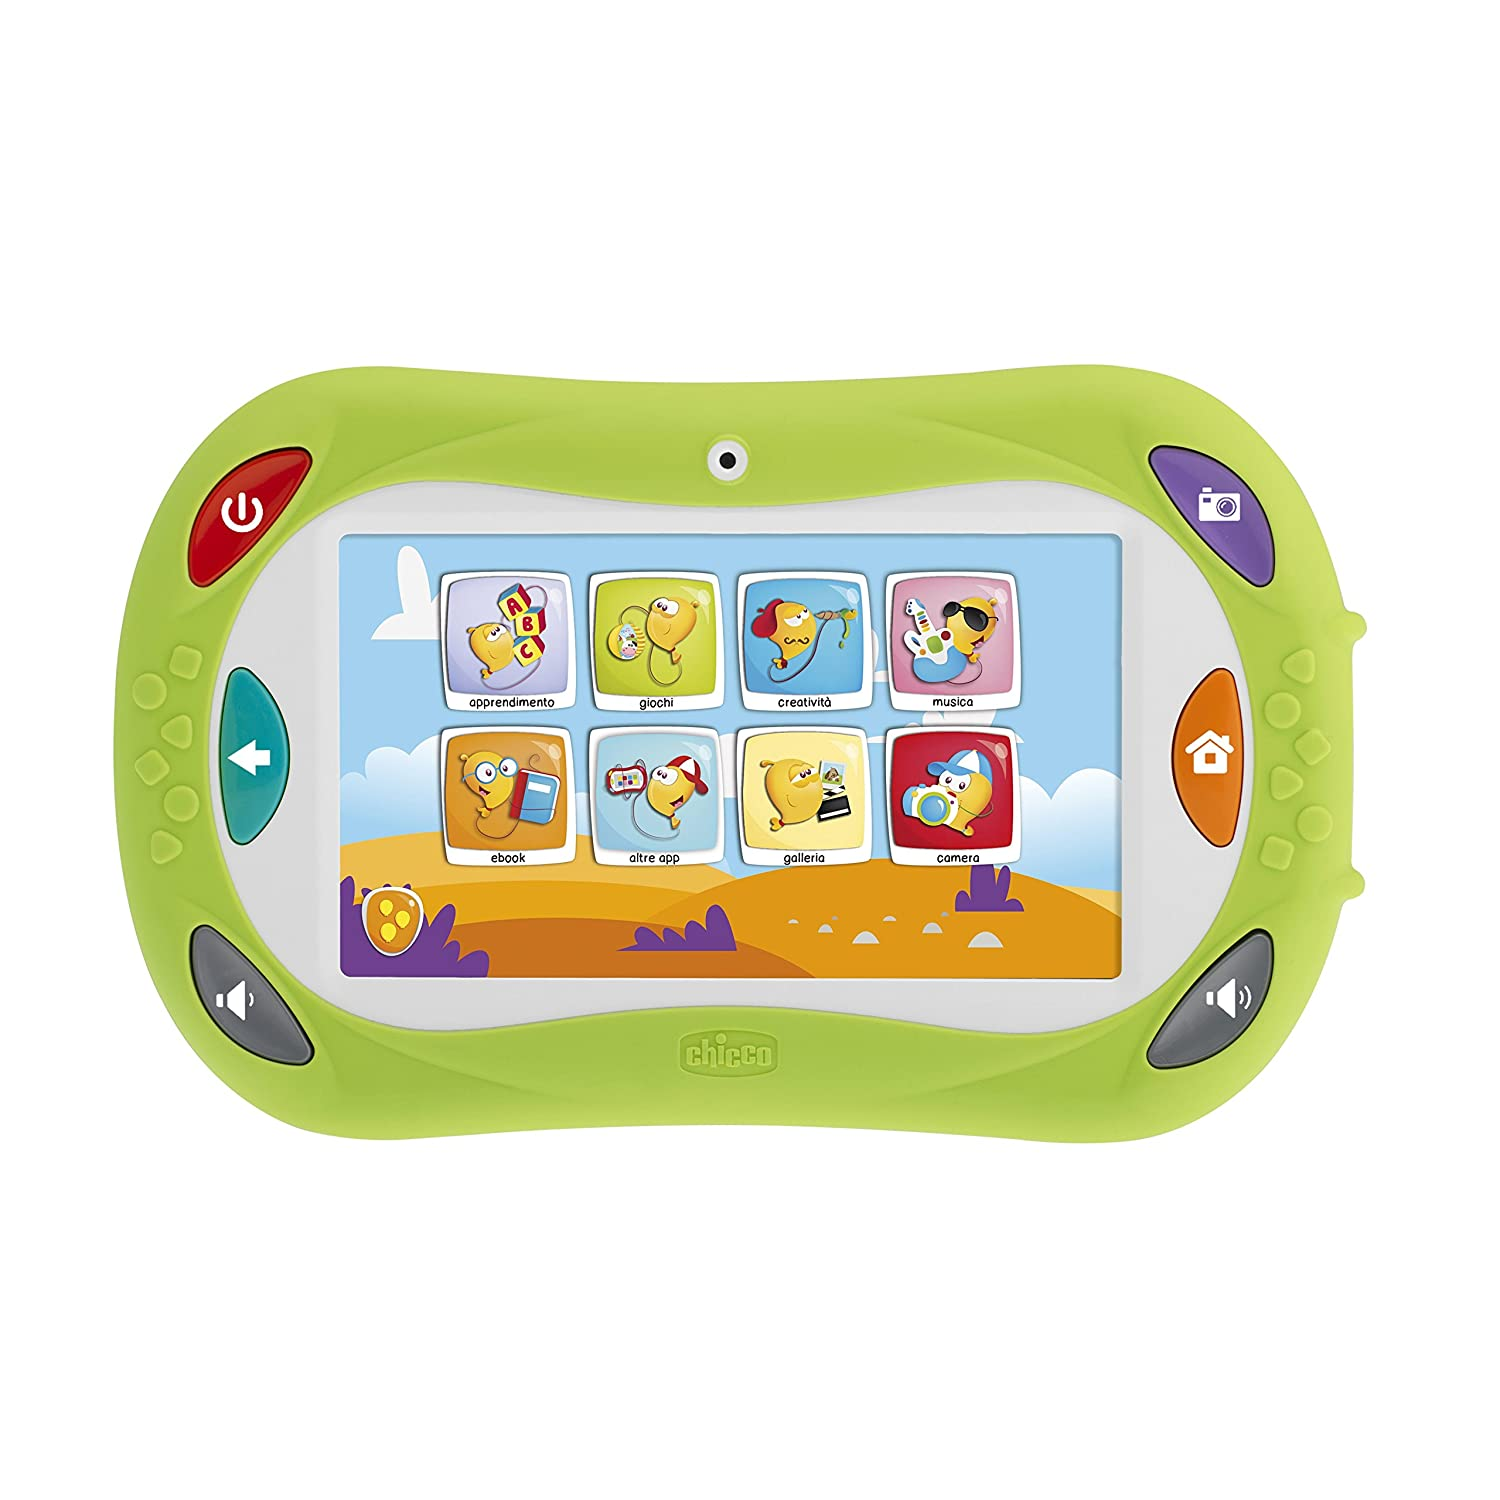 Pubblicità di Cartoonito: Chicco Happy Tab (con il microfono incluso) per 89,90€ (invece di 139,90€) [amazon.it]